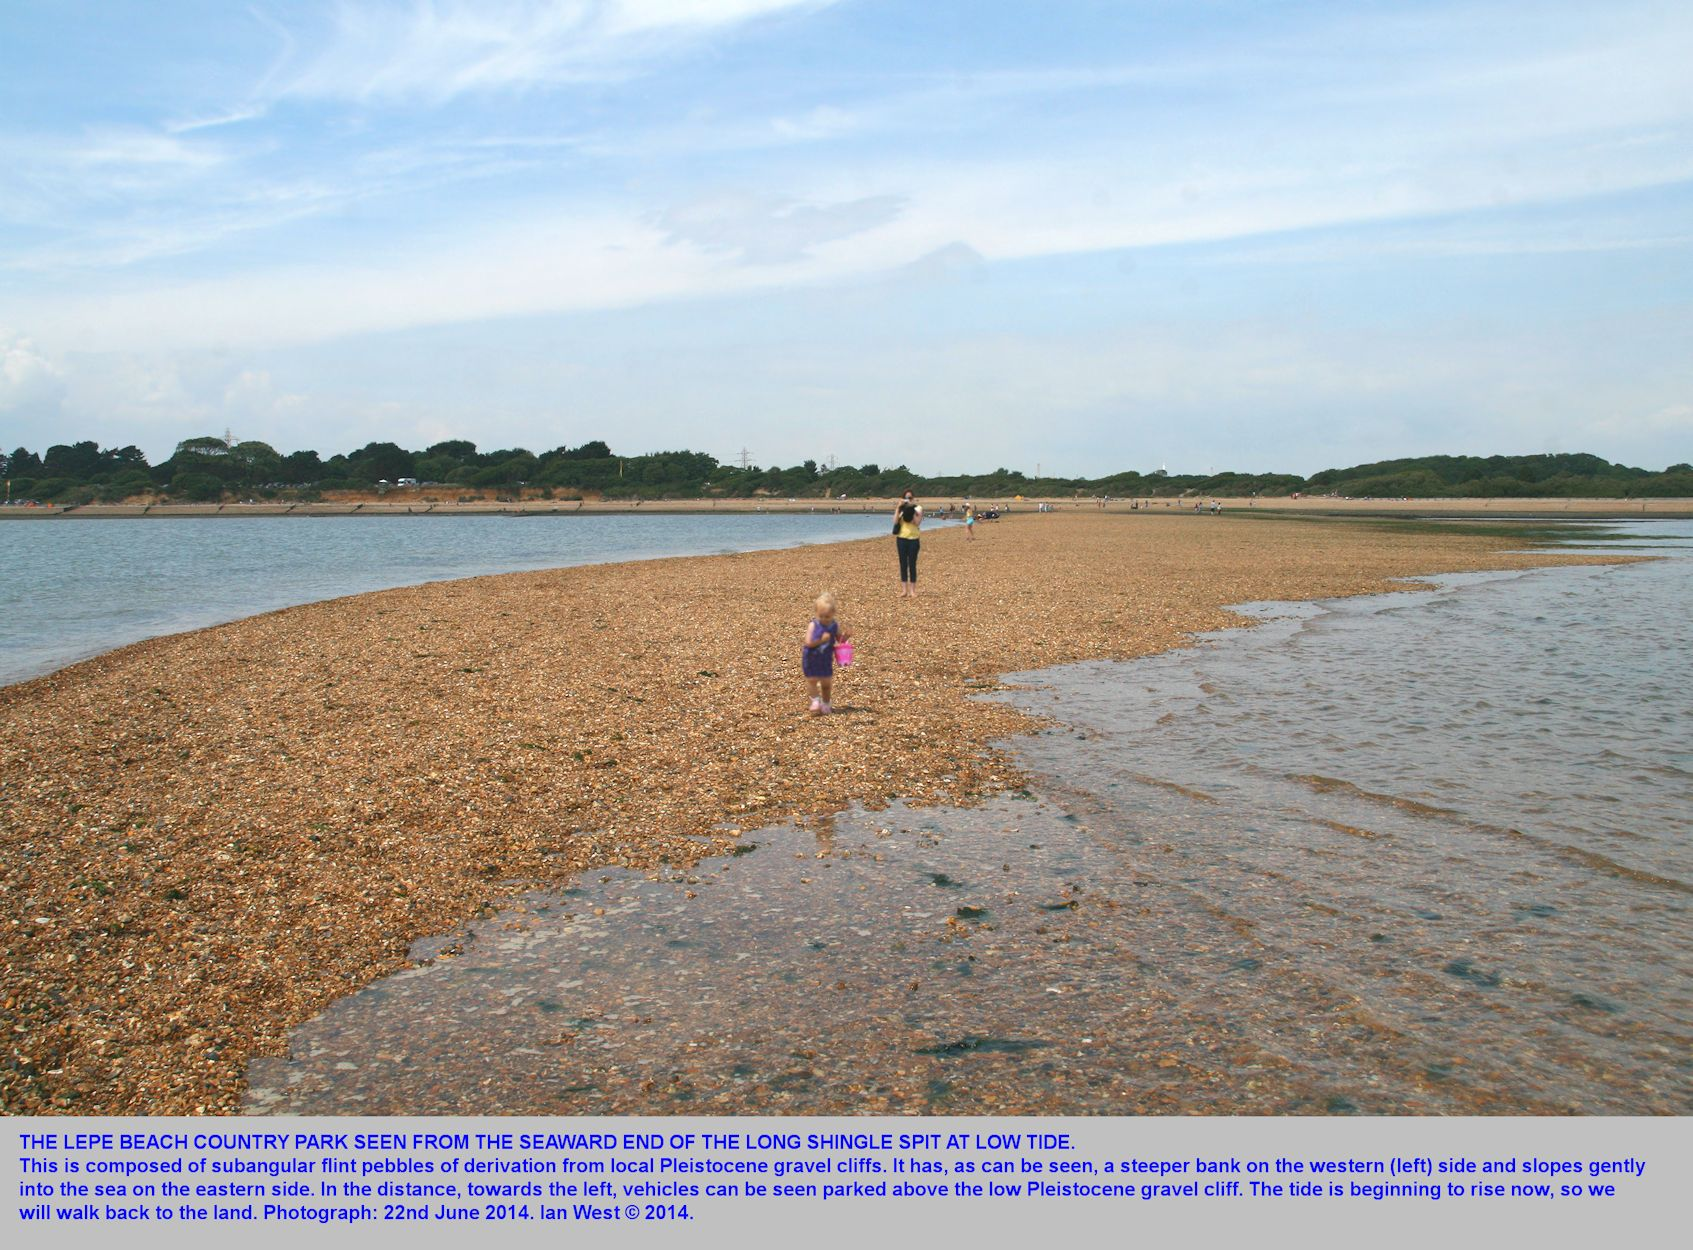 A view landward towards Lepe Beach at Lepe Country Park, Hampshire, from the end of the long, seaward, shingle spit, Horseshoe Spit, June 2014